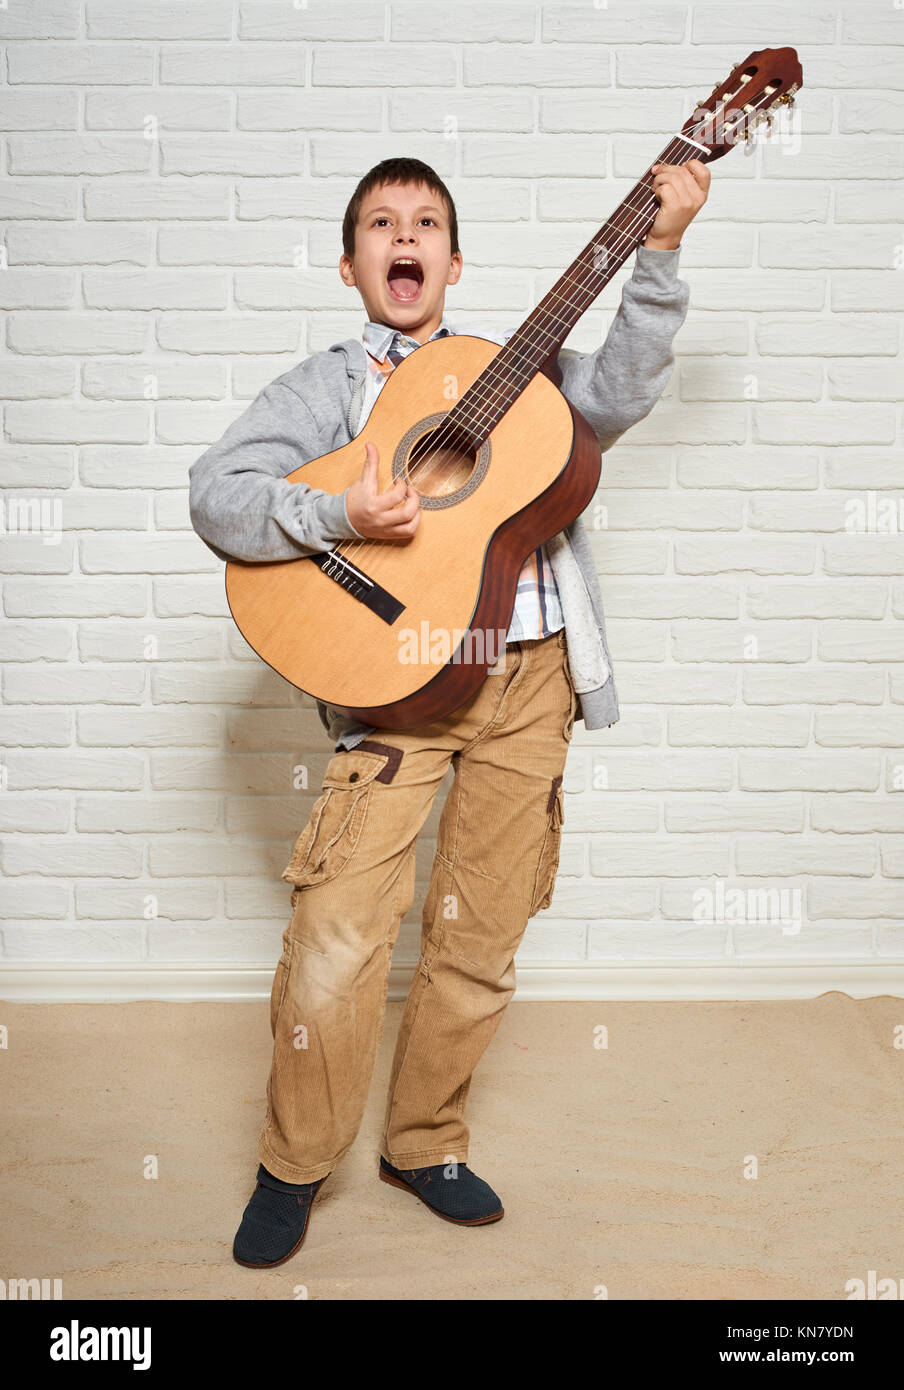 Boy Playing Music On Guitar Standing At Full Height White Brick Wall Background